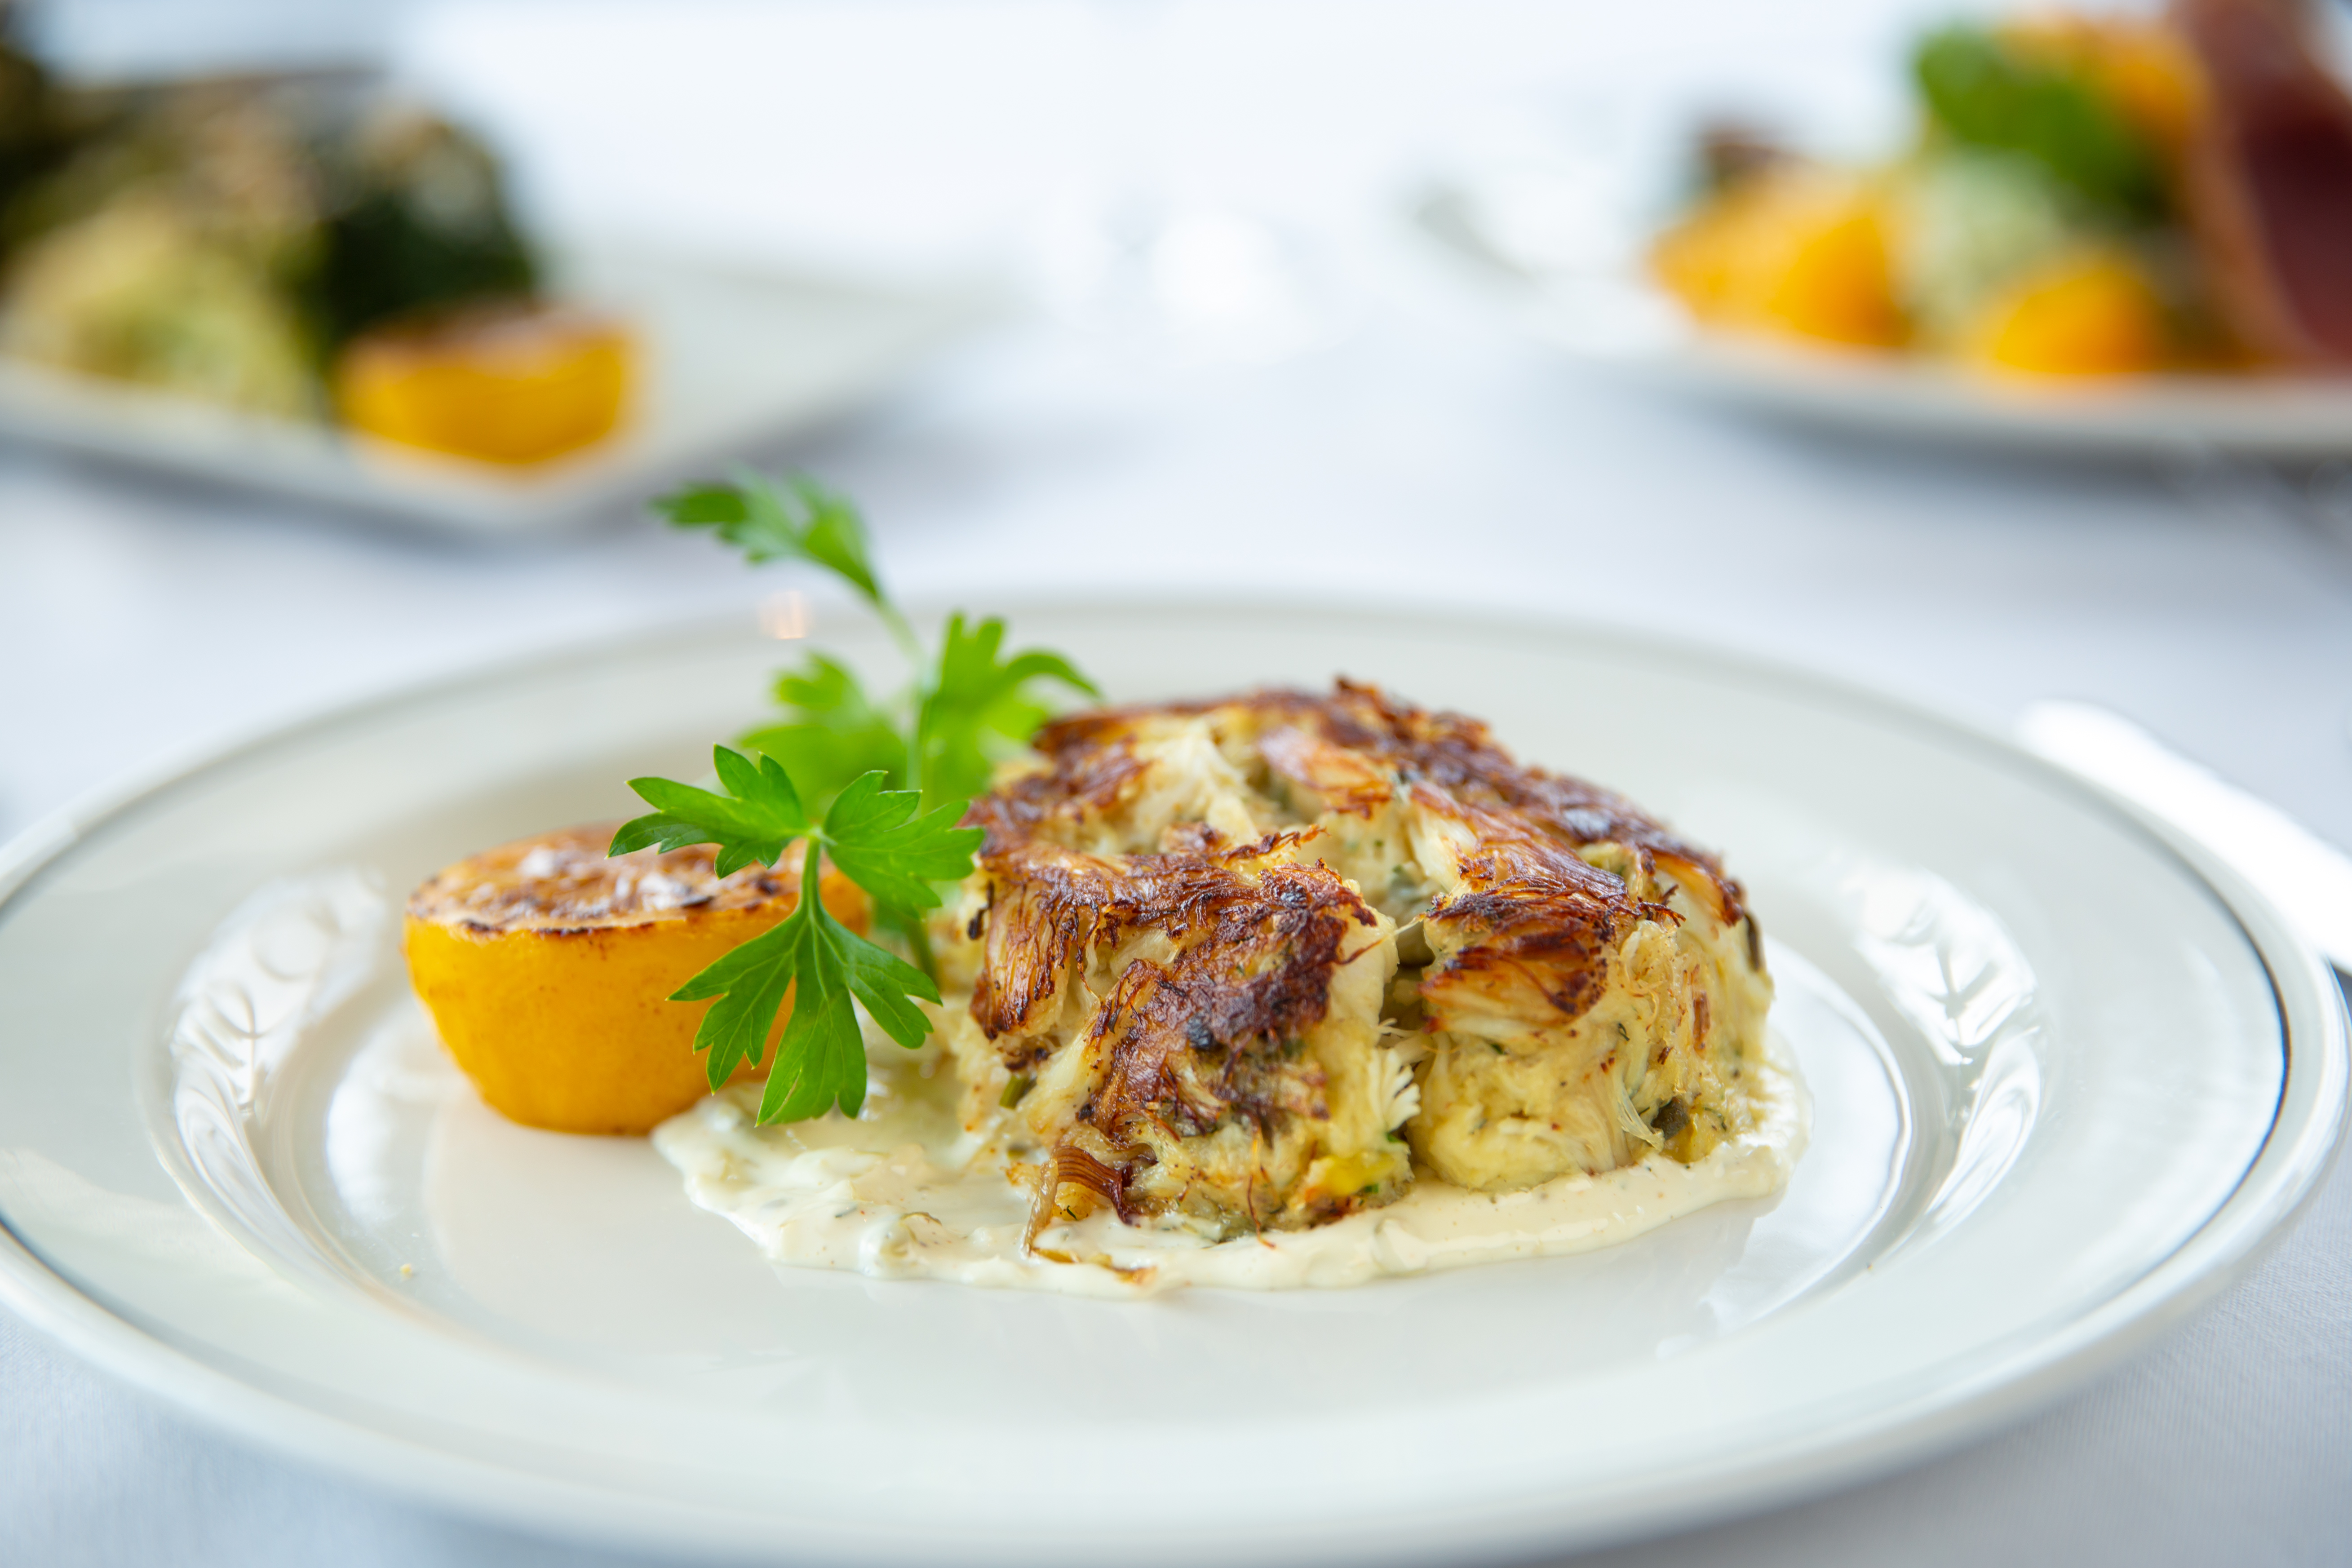 picture of JUMBO LUMP CRAB CAKE with dilled tartar sauce